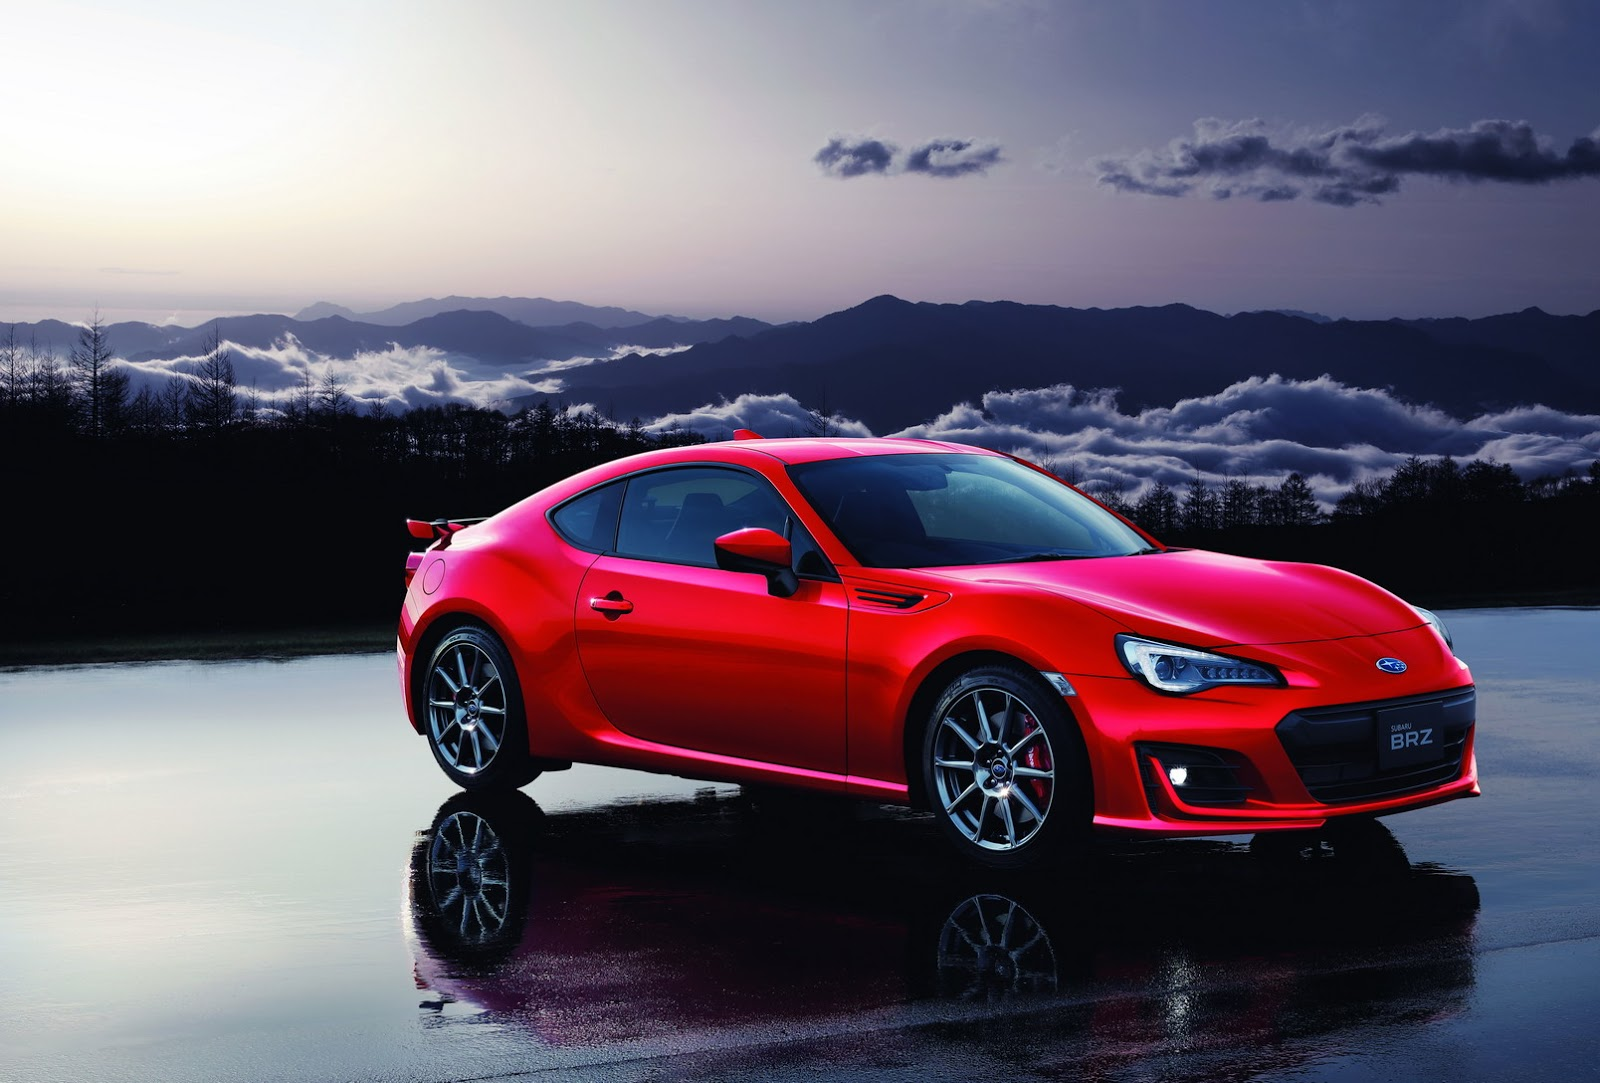 Japan Gets 2017 Subaru Brz Gt Range Topper Carscoops Com